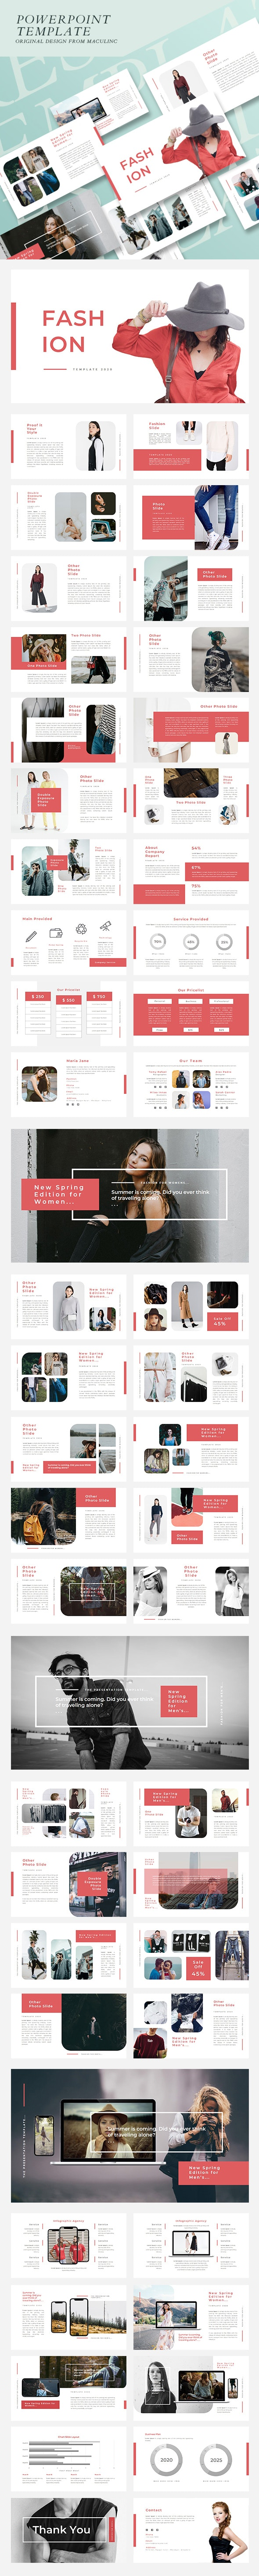 Fashion & Clothing Presentation Template Vol. 01 - Business PowerPoint Templates